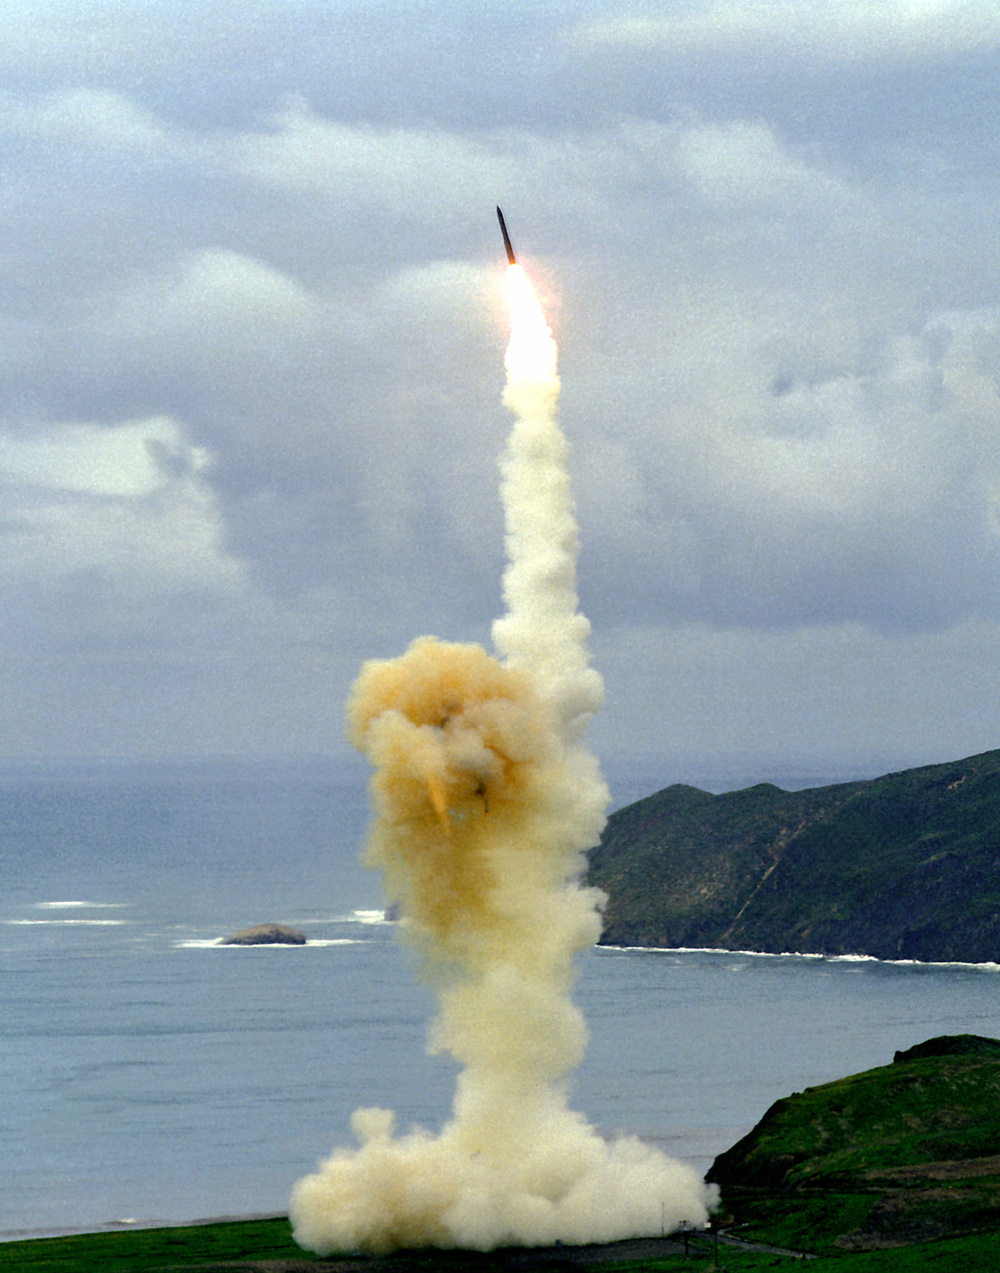 The launching of an intercontinental ballistic missile (ICBM), the Minuteman 3, from Vandenberg Air Force Base in California. Iran's ICBMs could reach the U.S. by 2015, a new intelligence report said. Credit: U.S. Air Force.